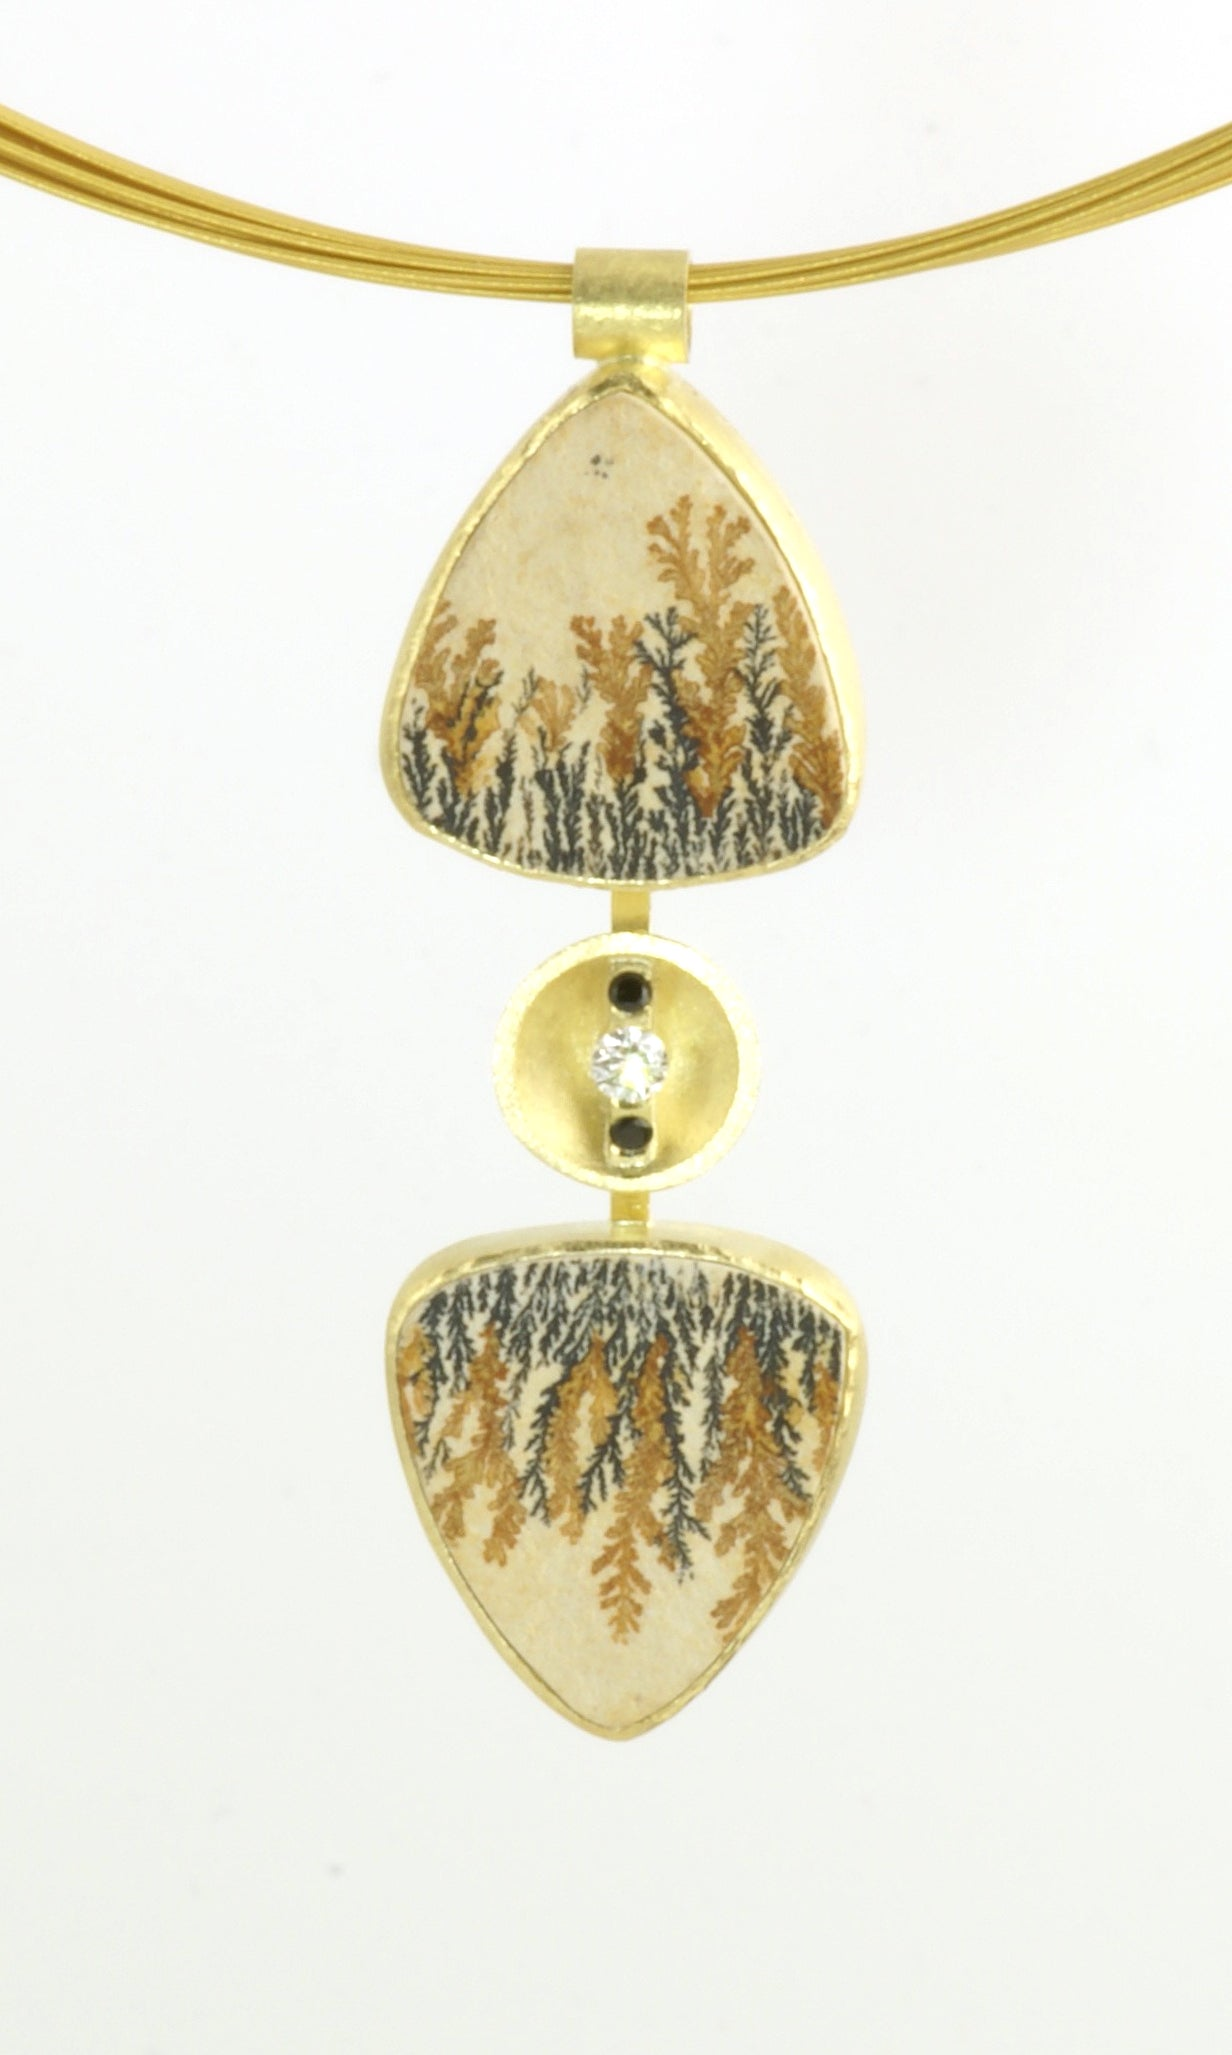 Dendritic Limestone Reflection pendent